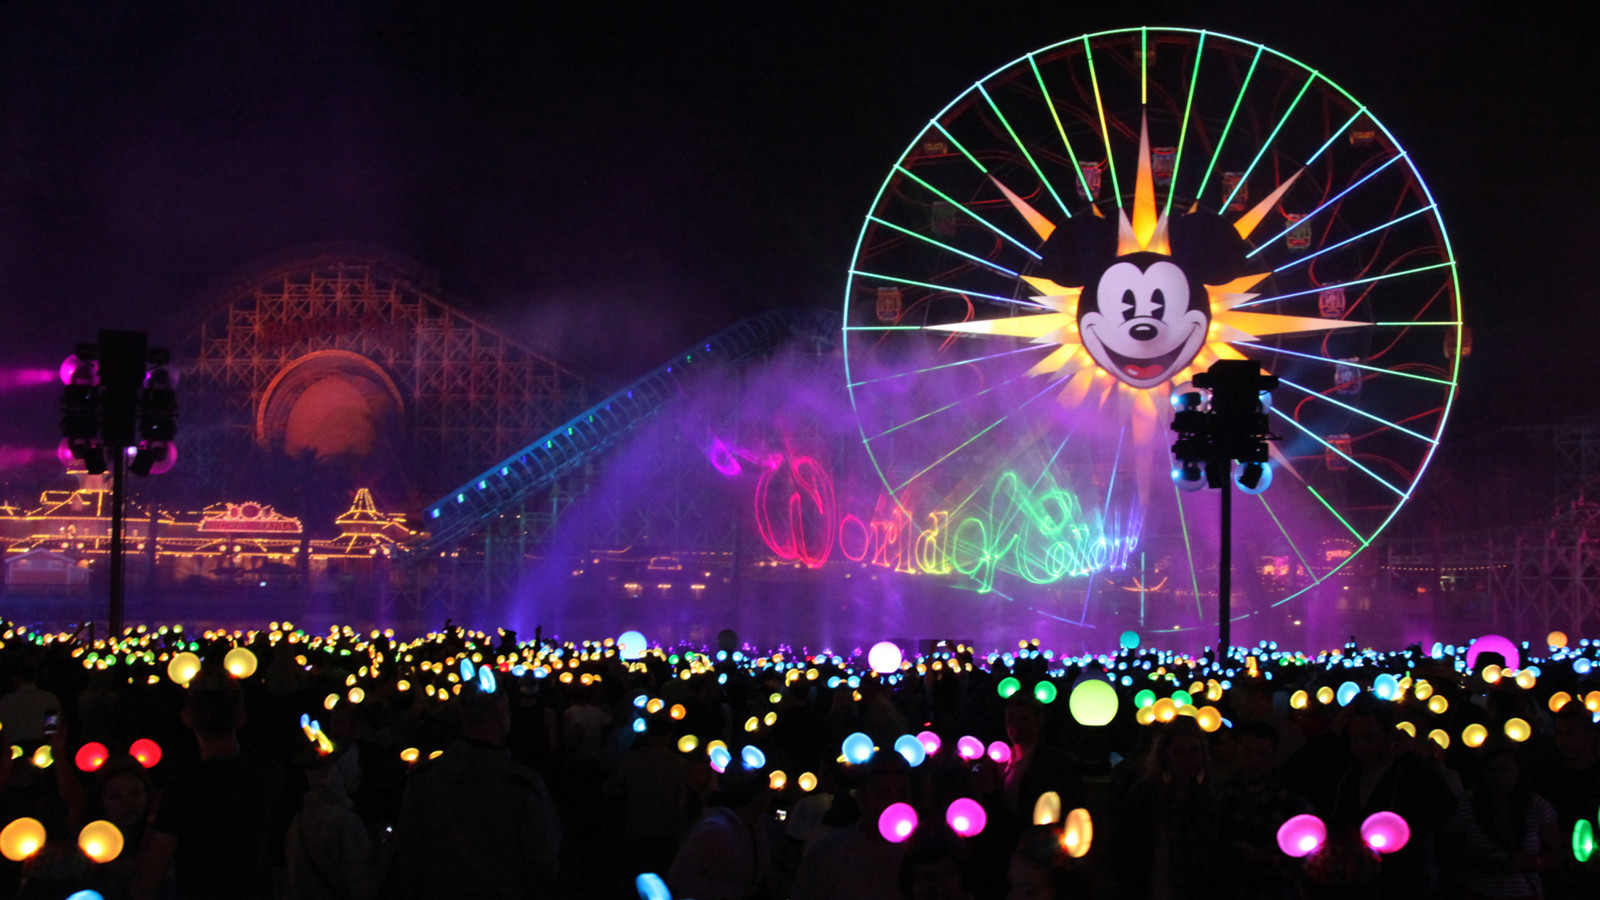 The Wonderful World of Color This show is the most breathe